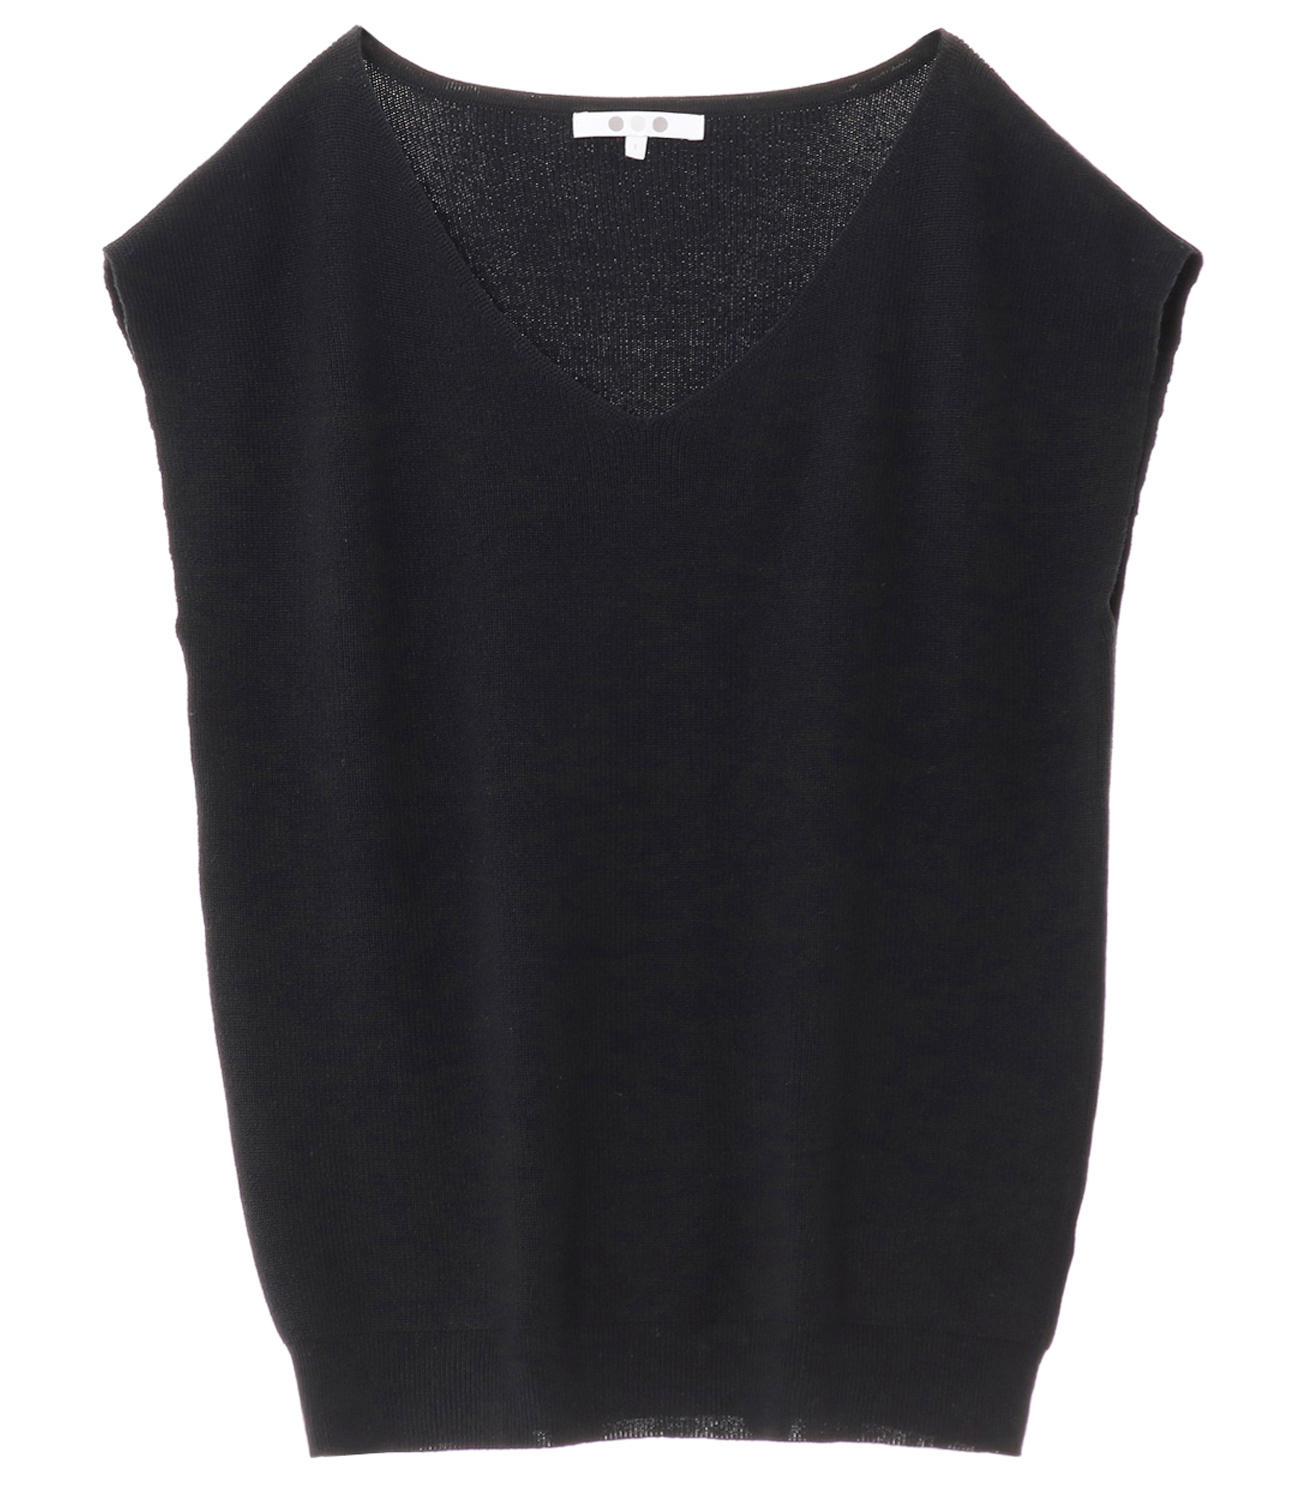 outlast sweater sleeveless vneck 詳細画像 black 1